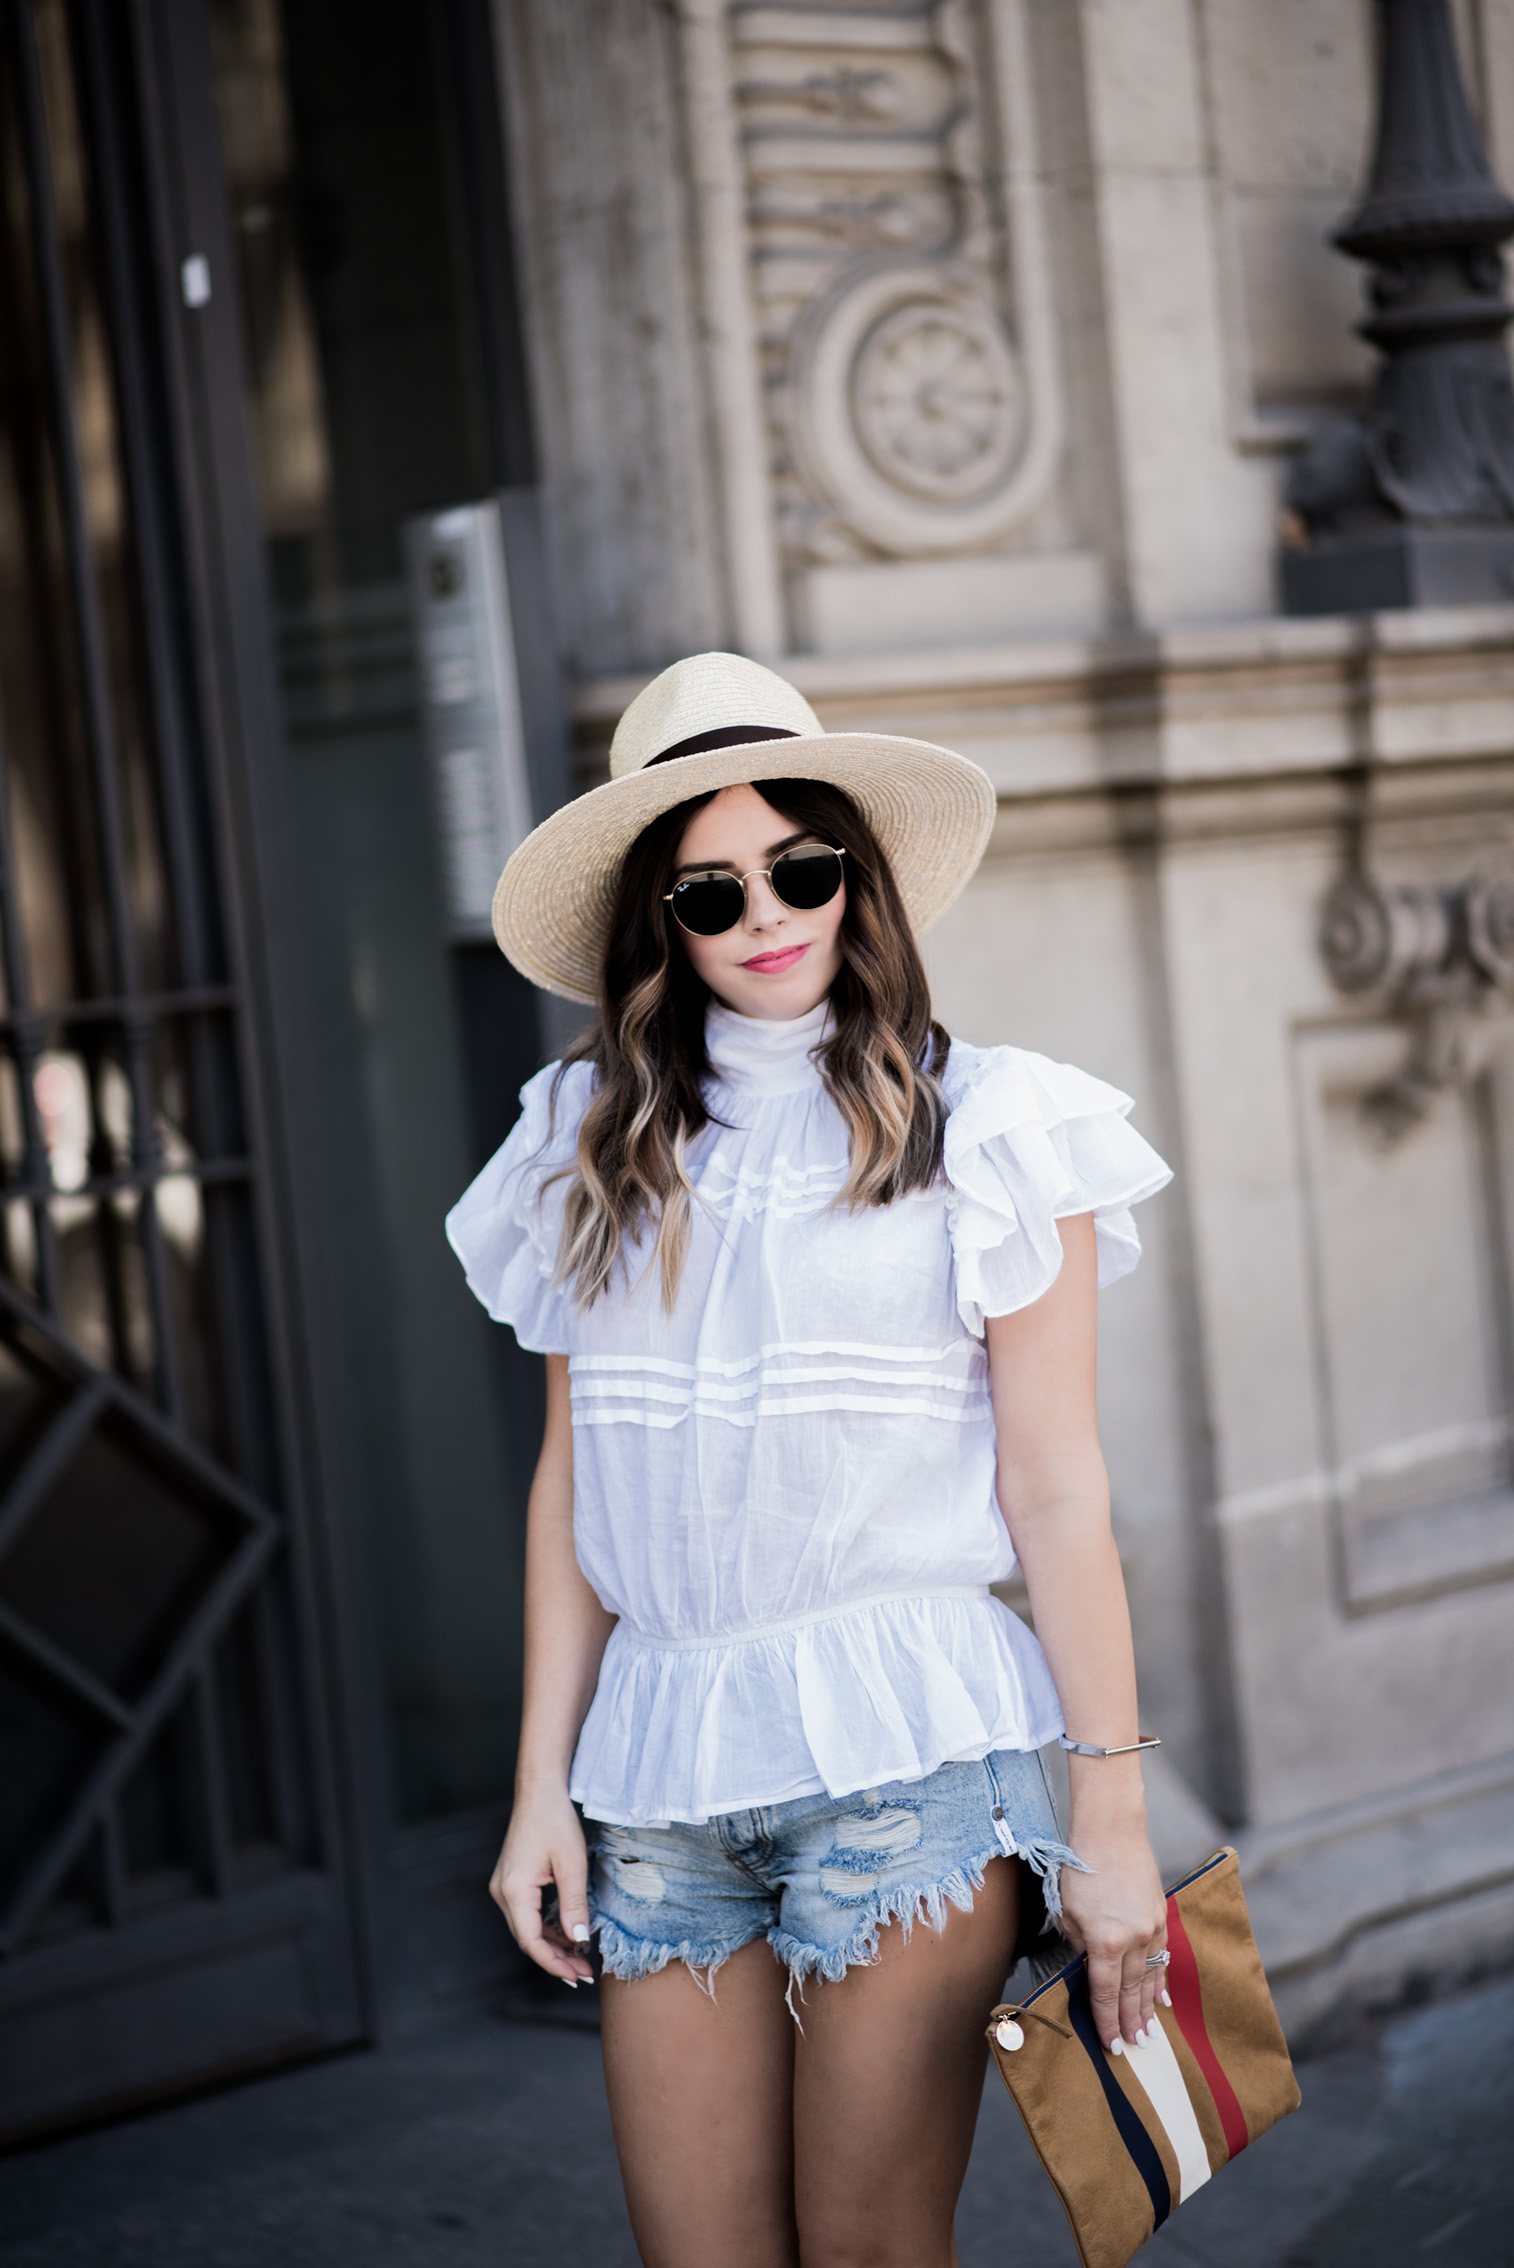 Tiffany Jais Houston fashion and lifestyle blogger | Happy 4th-The Barcelona Edition | White ruffle blouse, Brixton Willow Hat, Clare V Clutch, One Teaspoon Brandos Shorts, casual outfits, What to wear on the 4th of July,